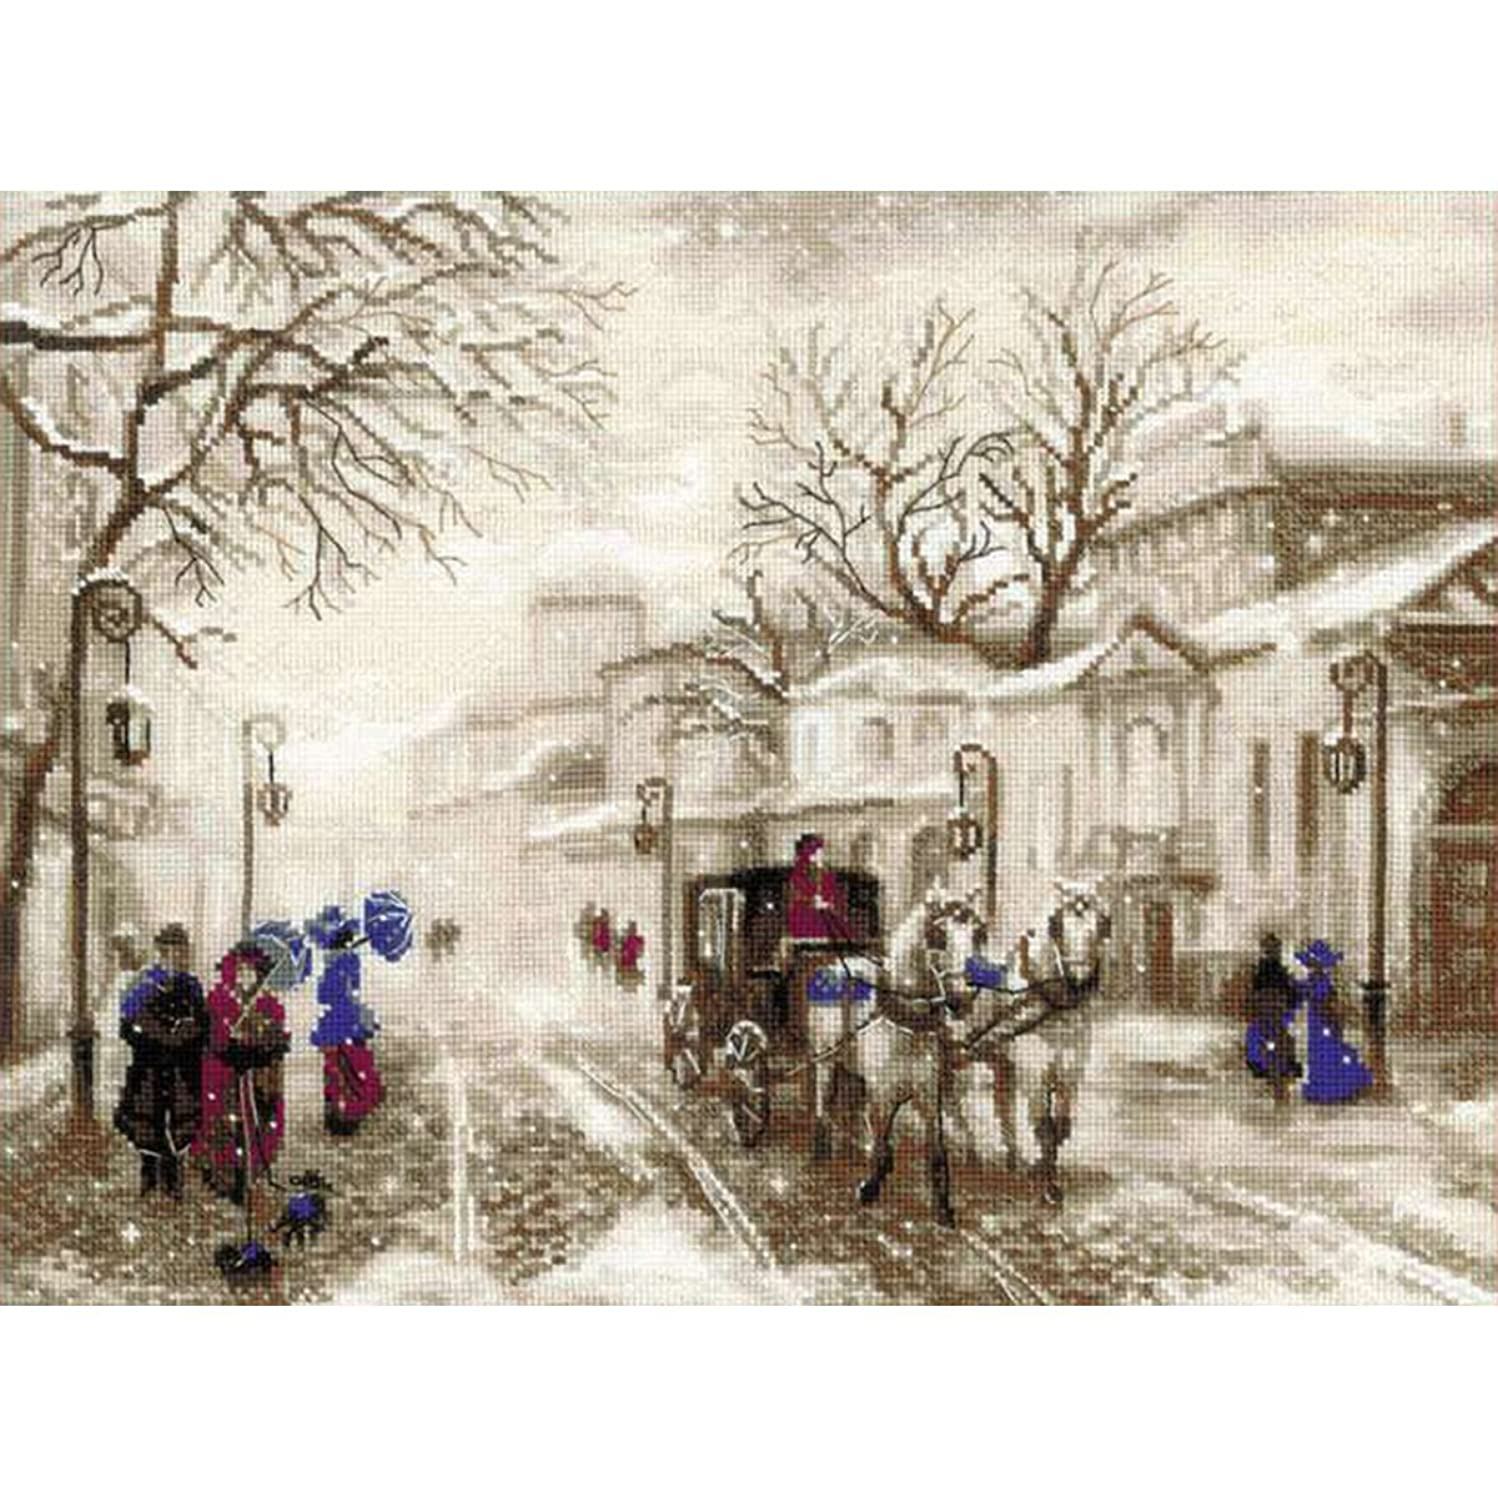 RIOLIS 1400 - Old Street - Counted Cross Stitch Kit 15?